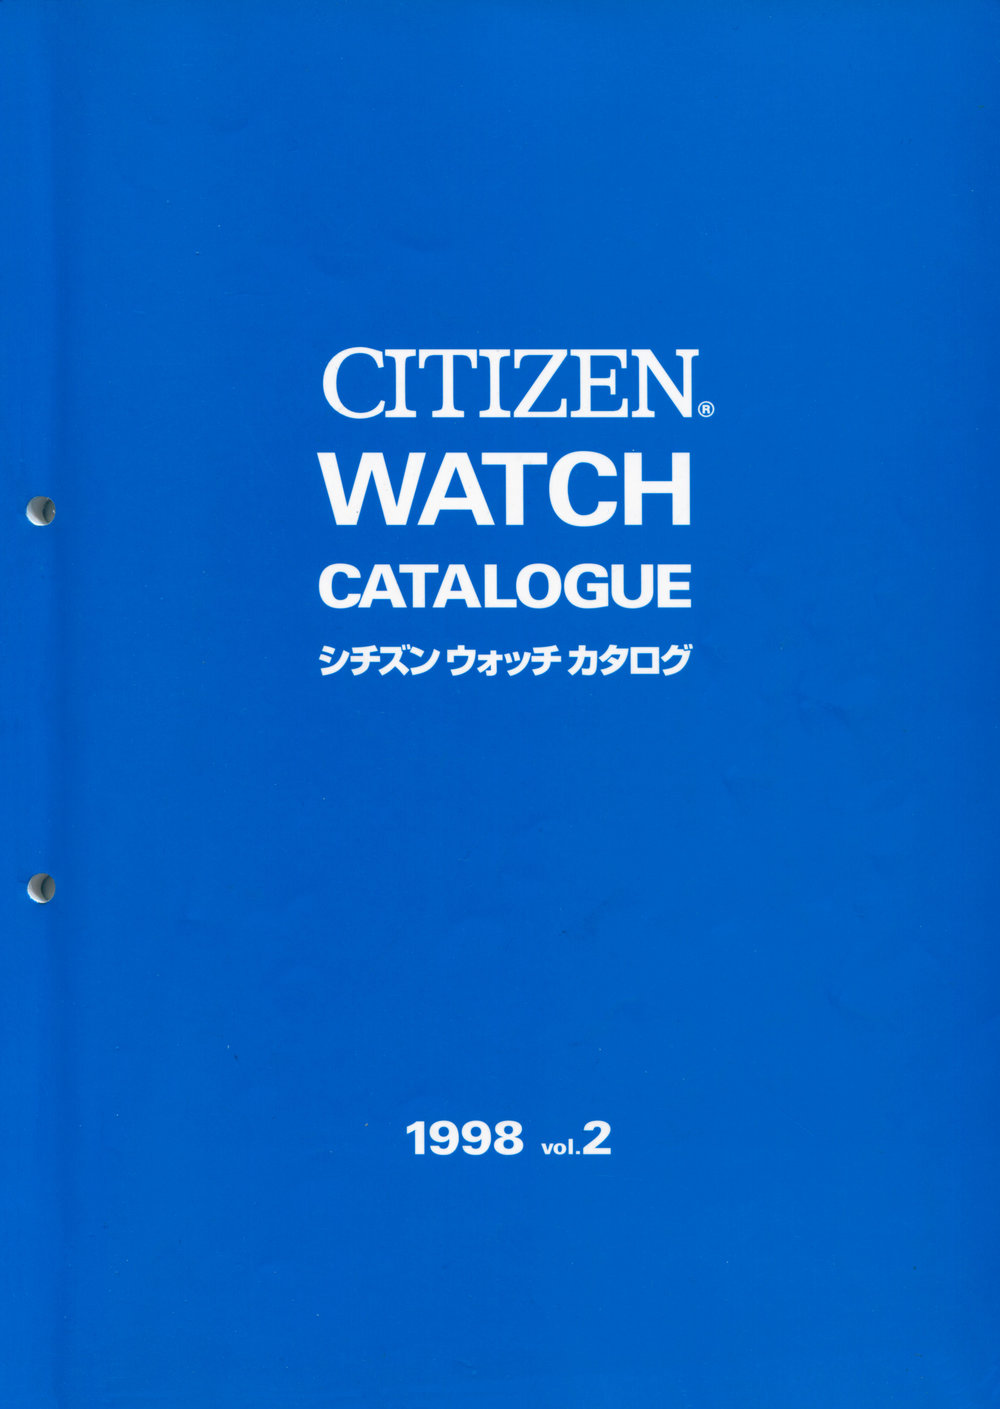 Citizen Catalog 1998 Vol. 2